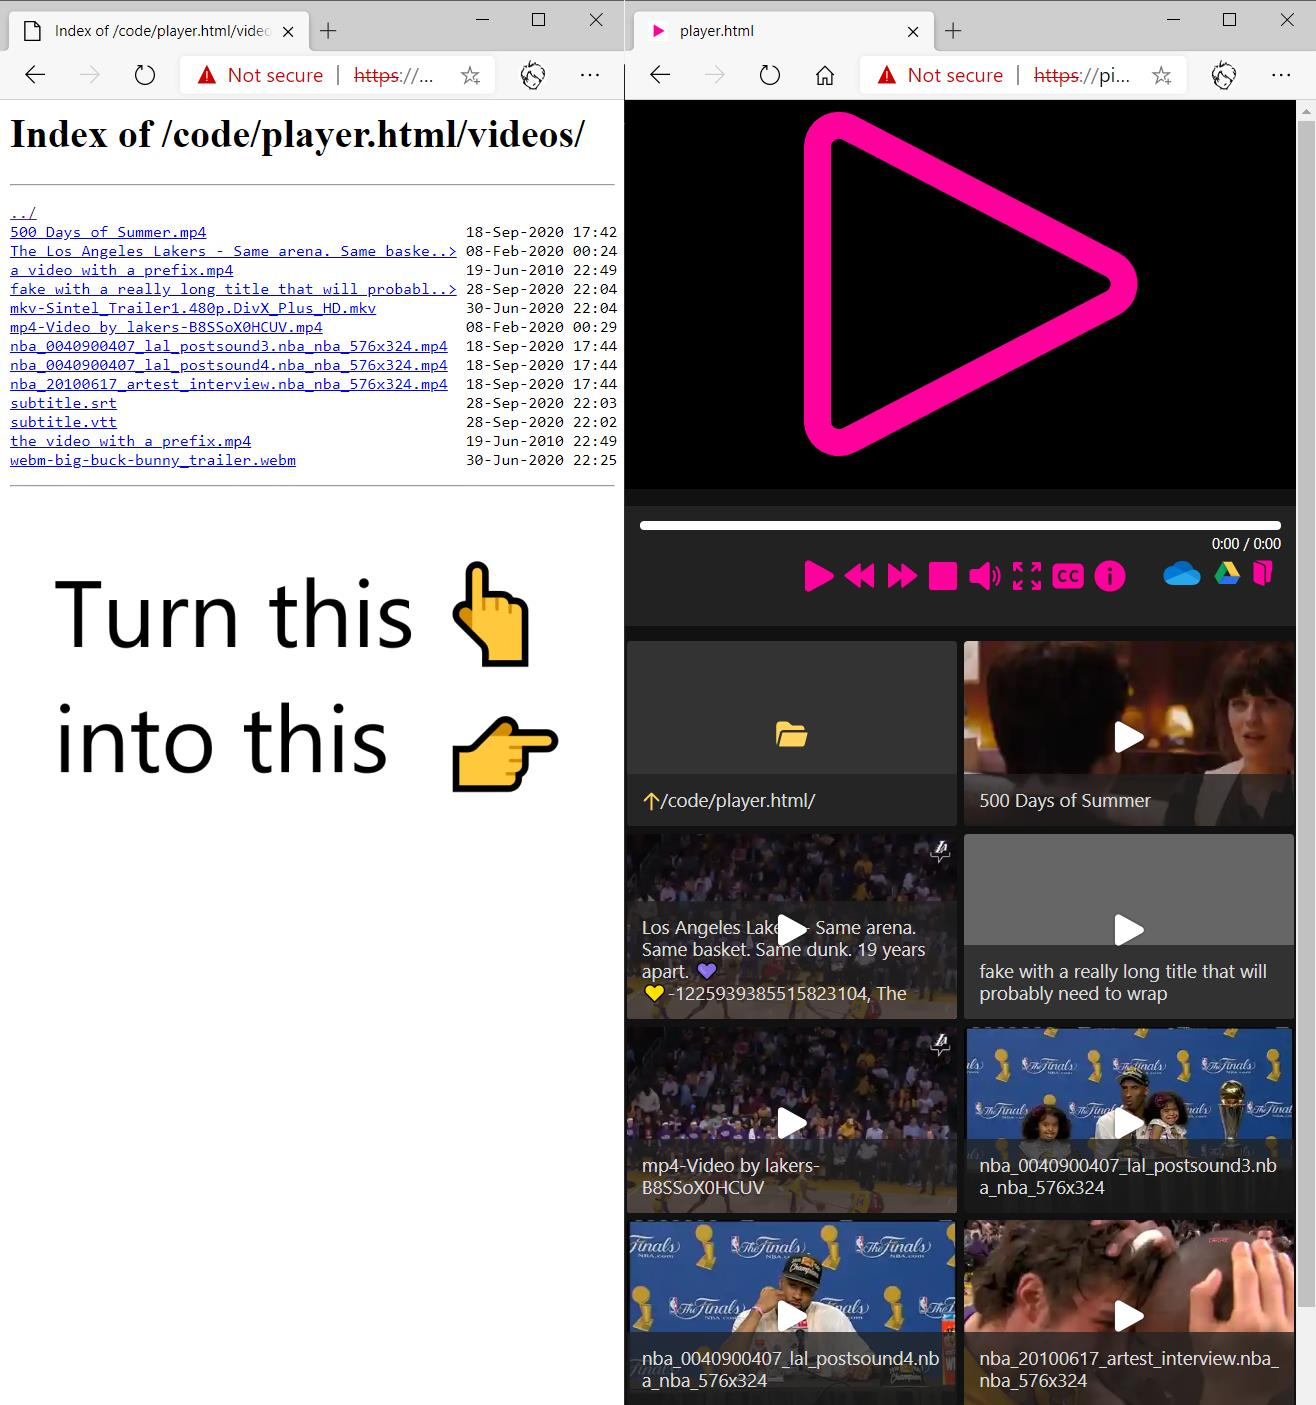 player.html in action